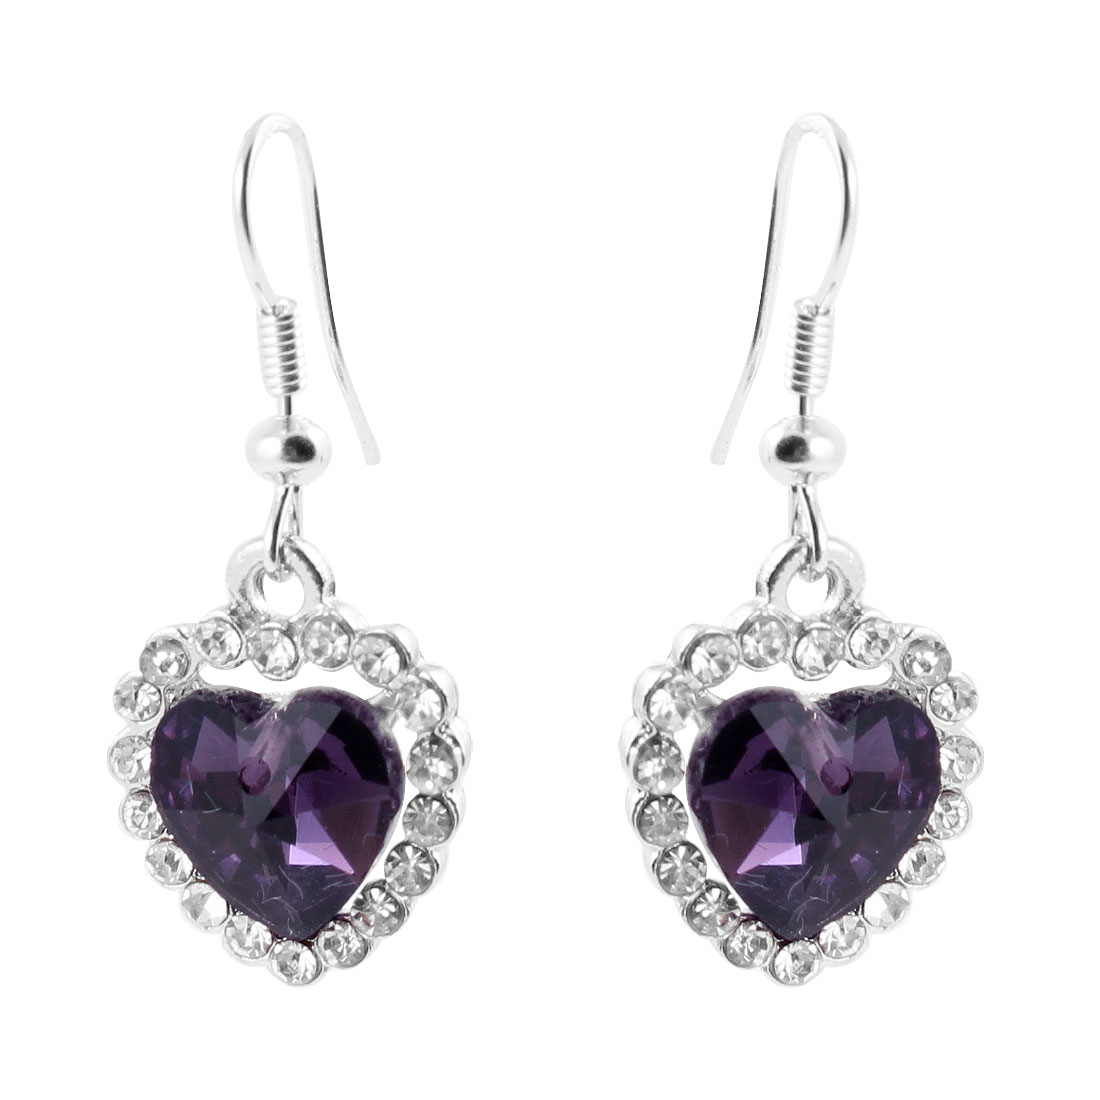 Rhinestone Faceted Bead Decor Heart Pendant Fishhook Earrings Purple Silver Tone